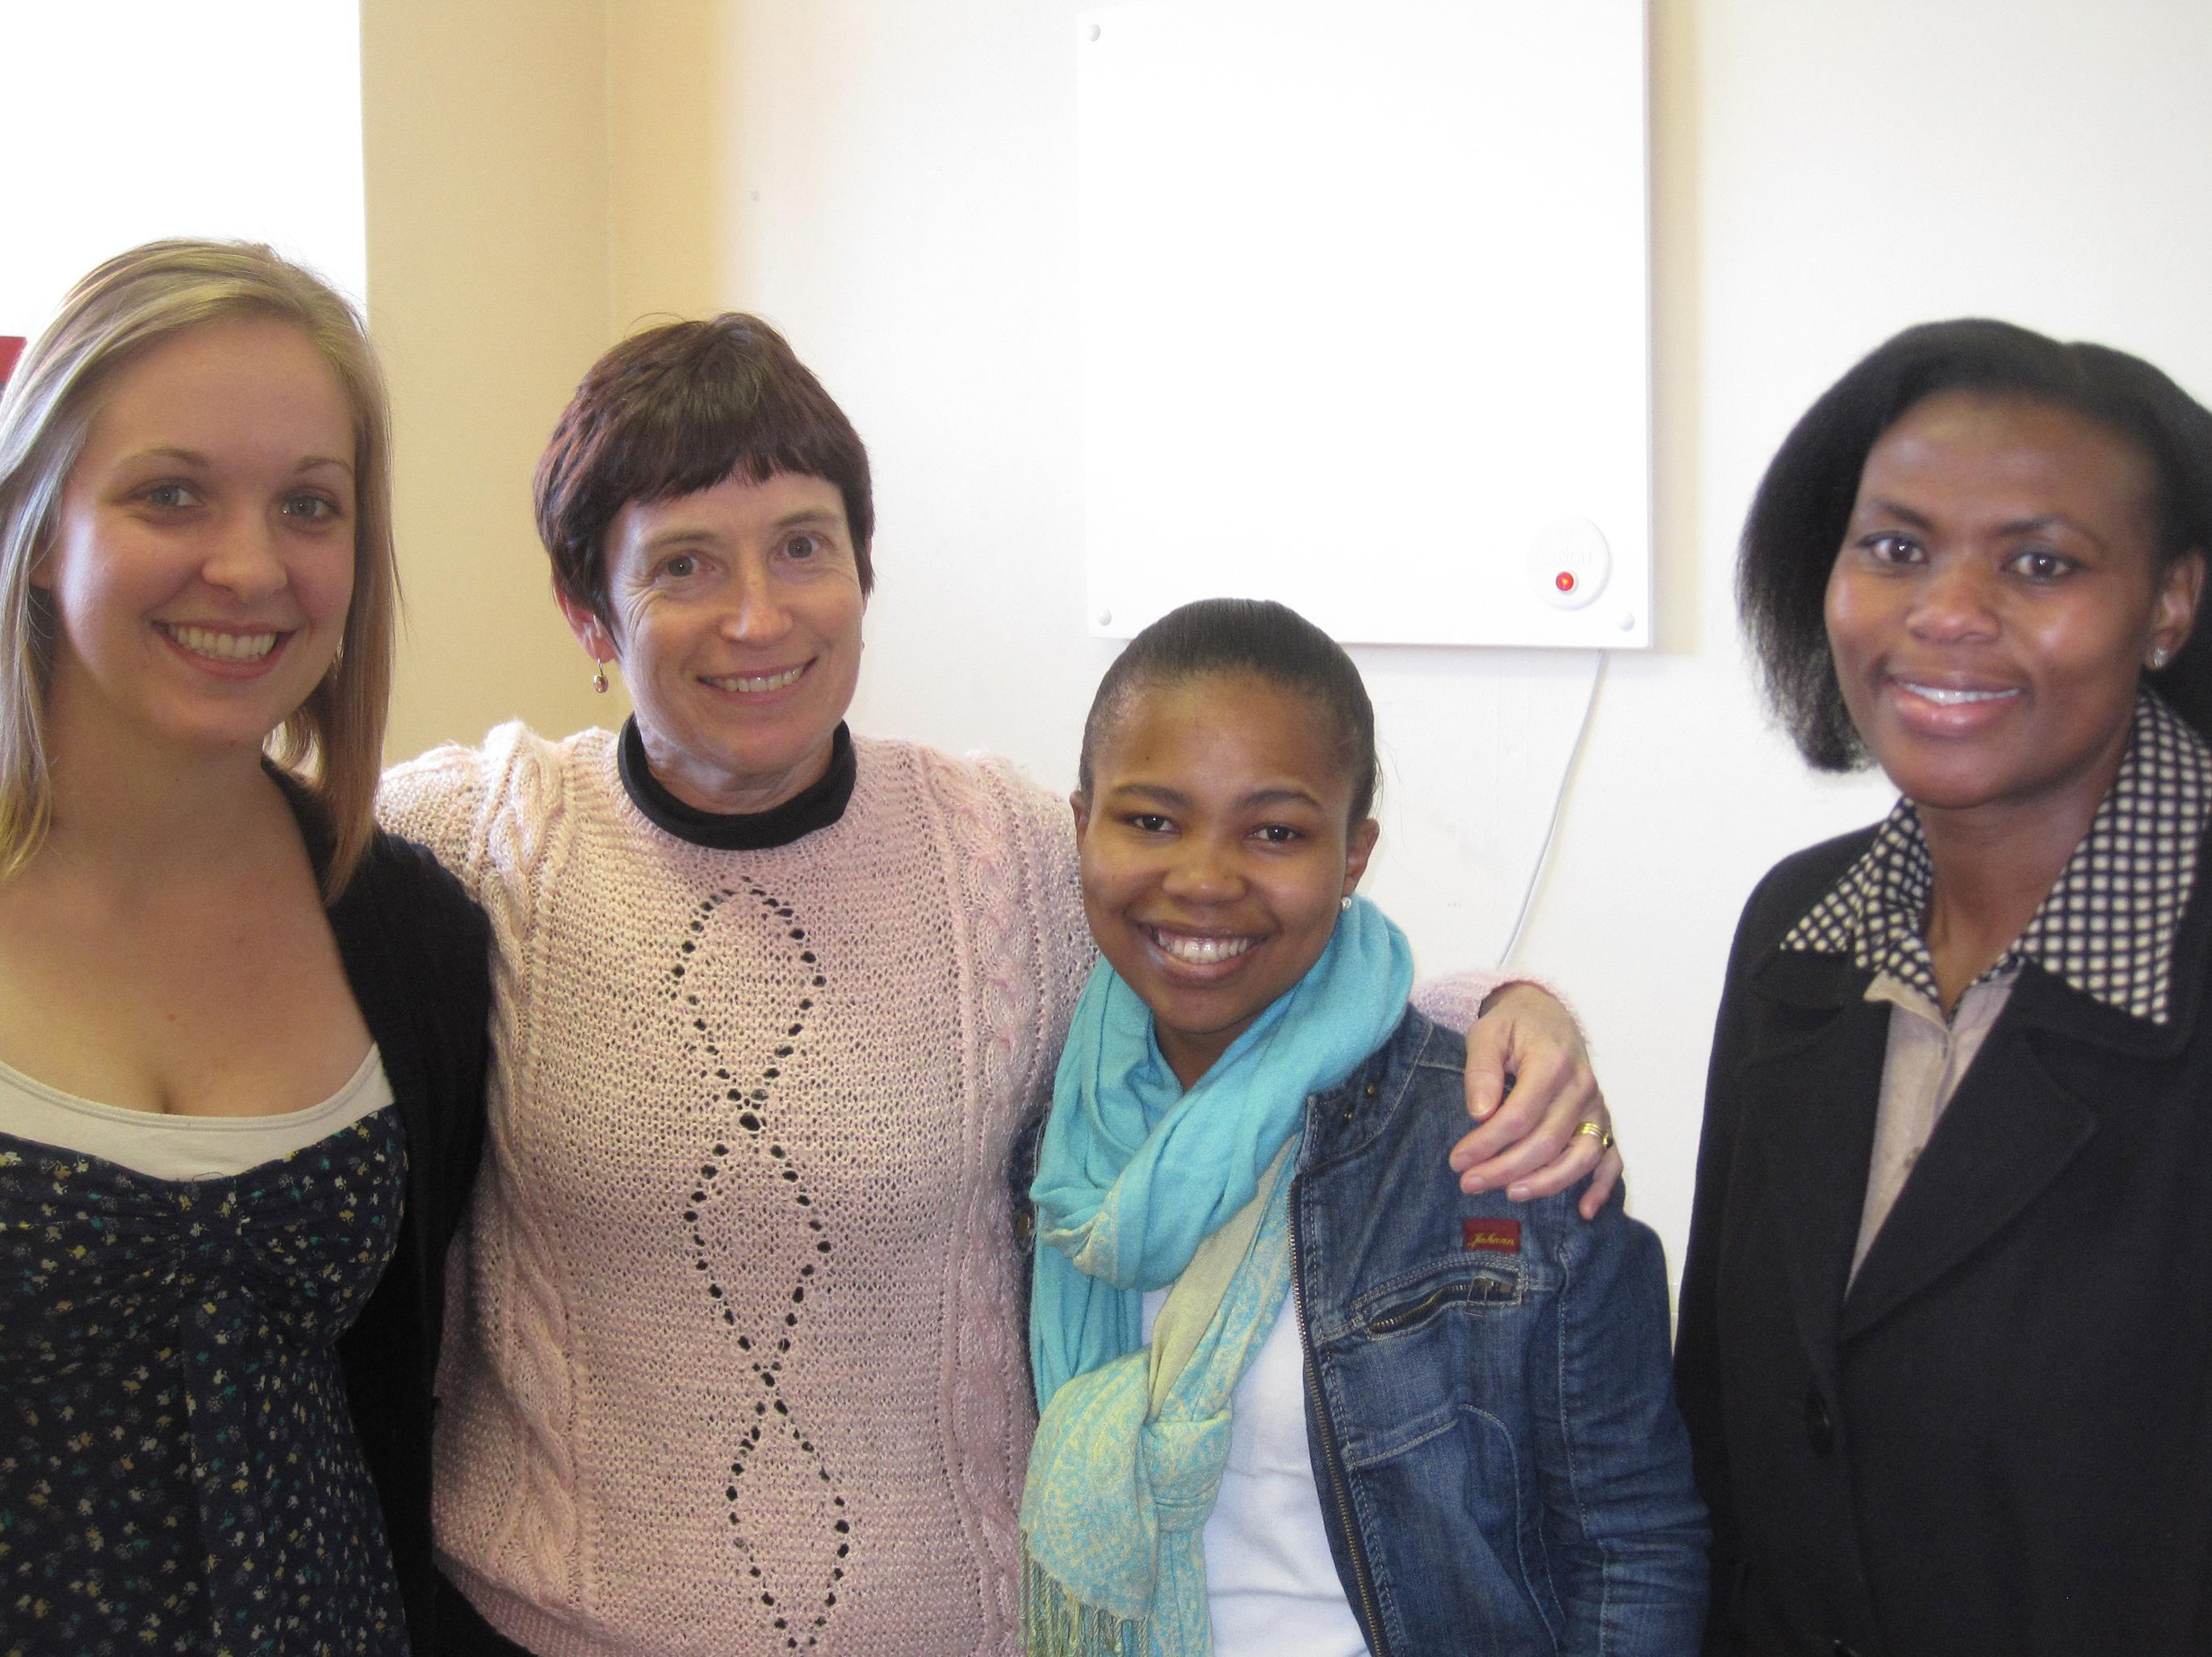 Mica Blauw (left) with the research team in South Africa, including Barbara Laughton (second from left), the pediatrician who led the study.